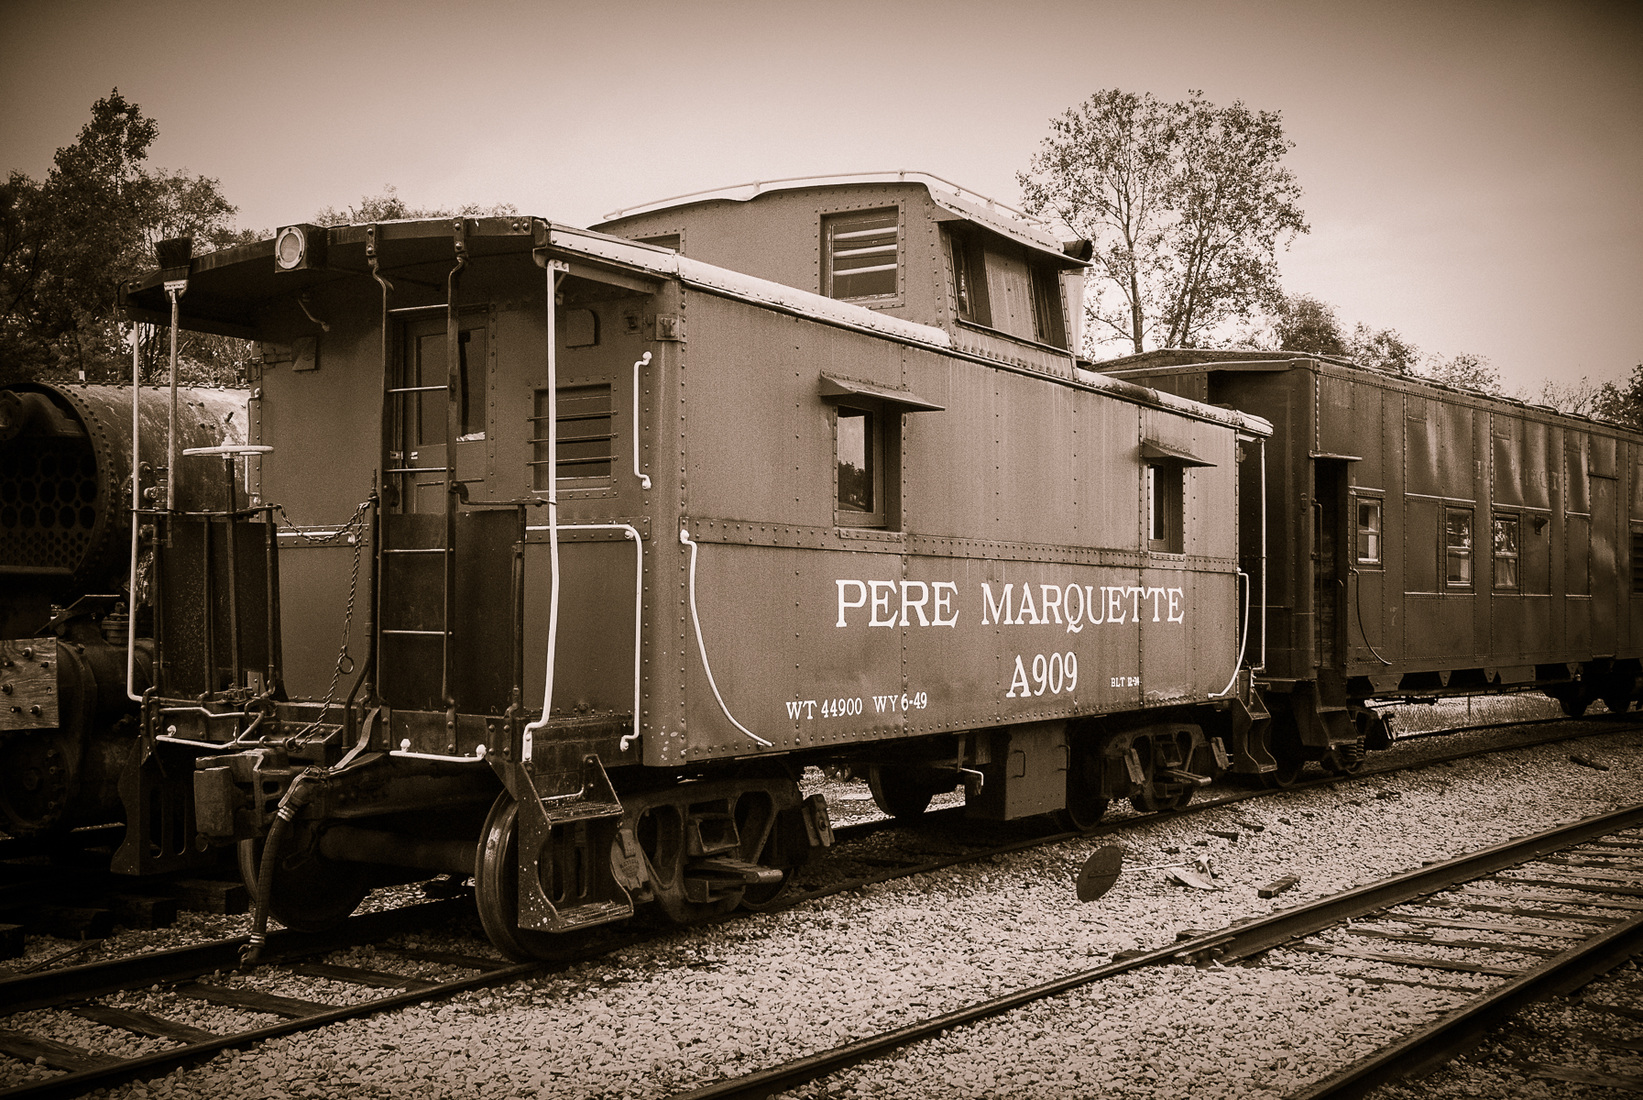 Iron, Steel and Steam Pere Marquette Caboose - Duotone